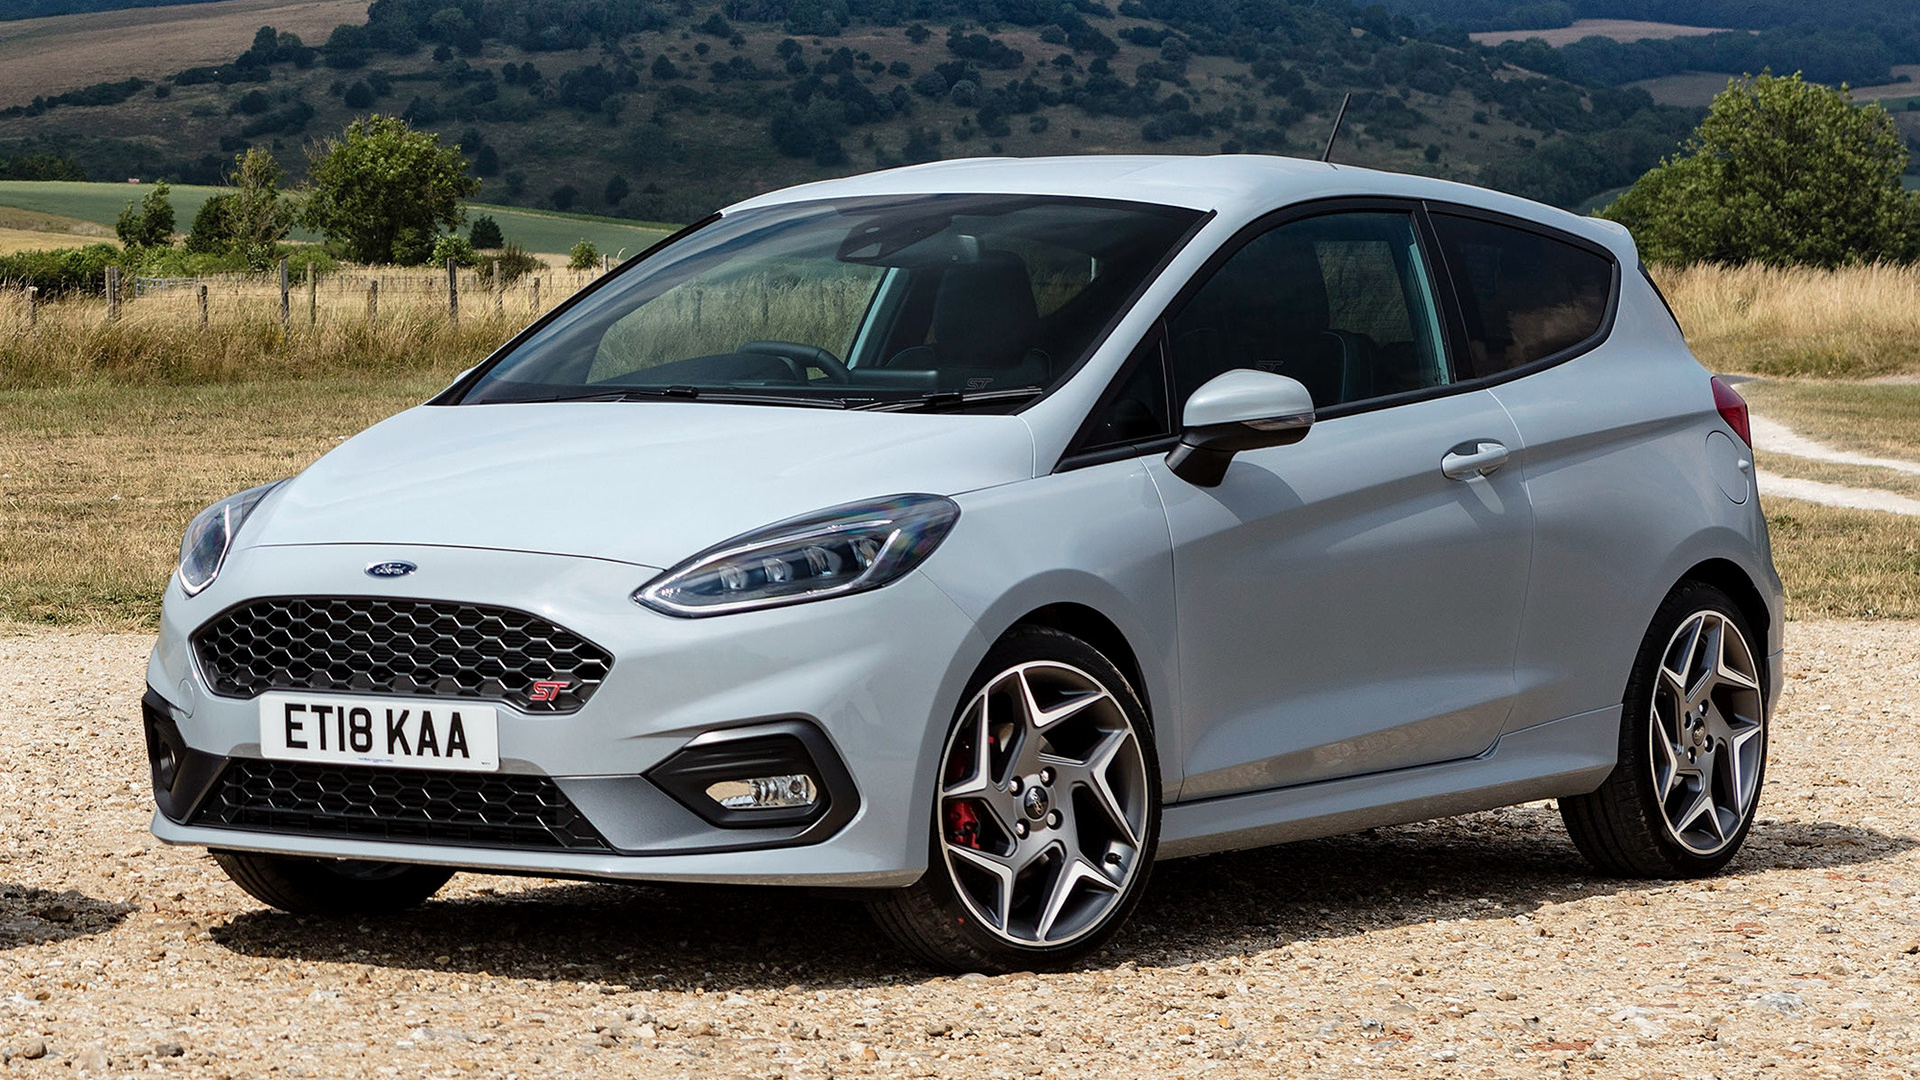 2018 Ford Fiesta ST 3-door (UK) - Wallpapers and HD Images ...